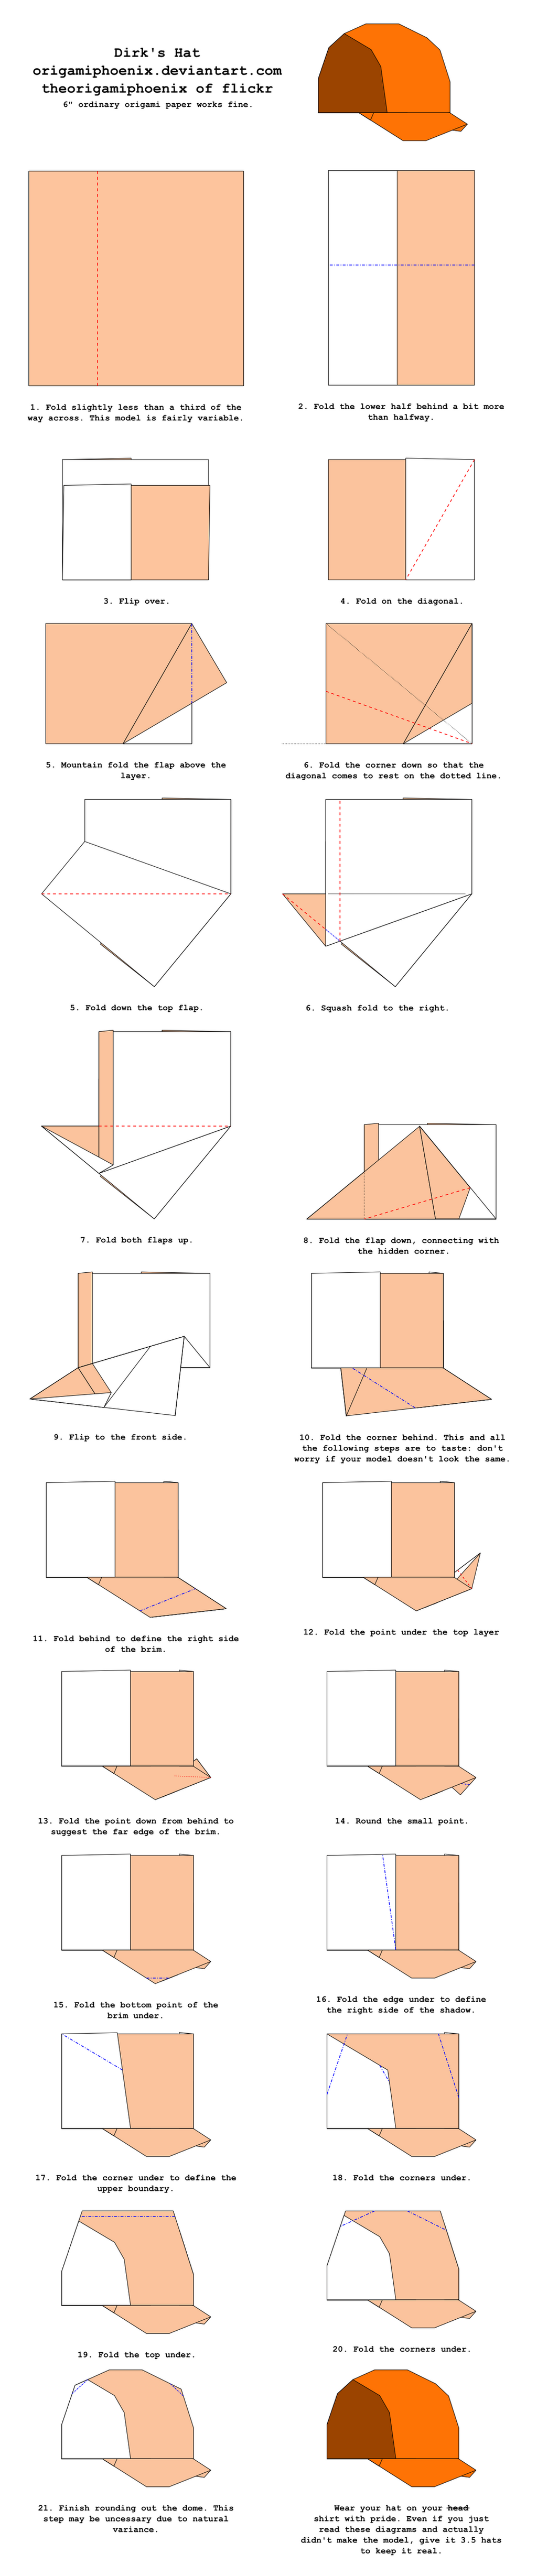 Origami Dirk's Hat Diagrams by OrigamiPhoenix on DeviantArt - photo#33